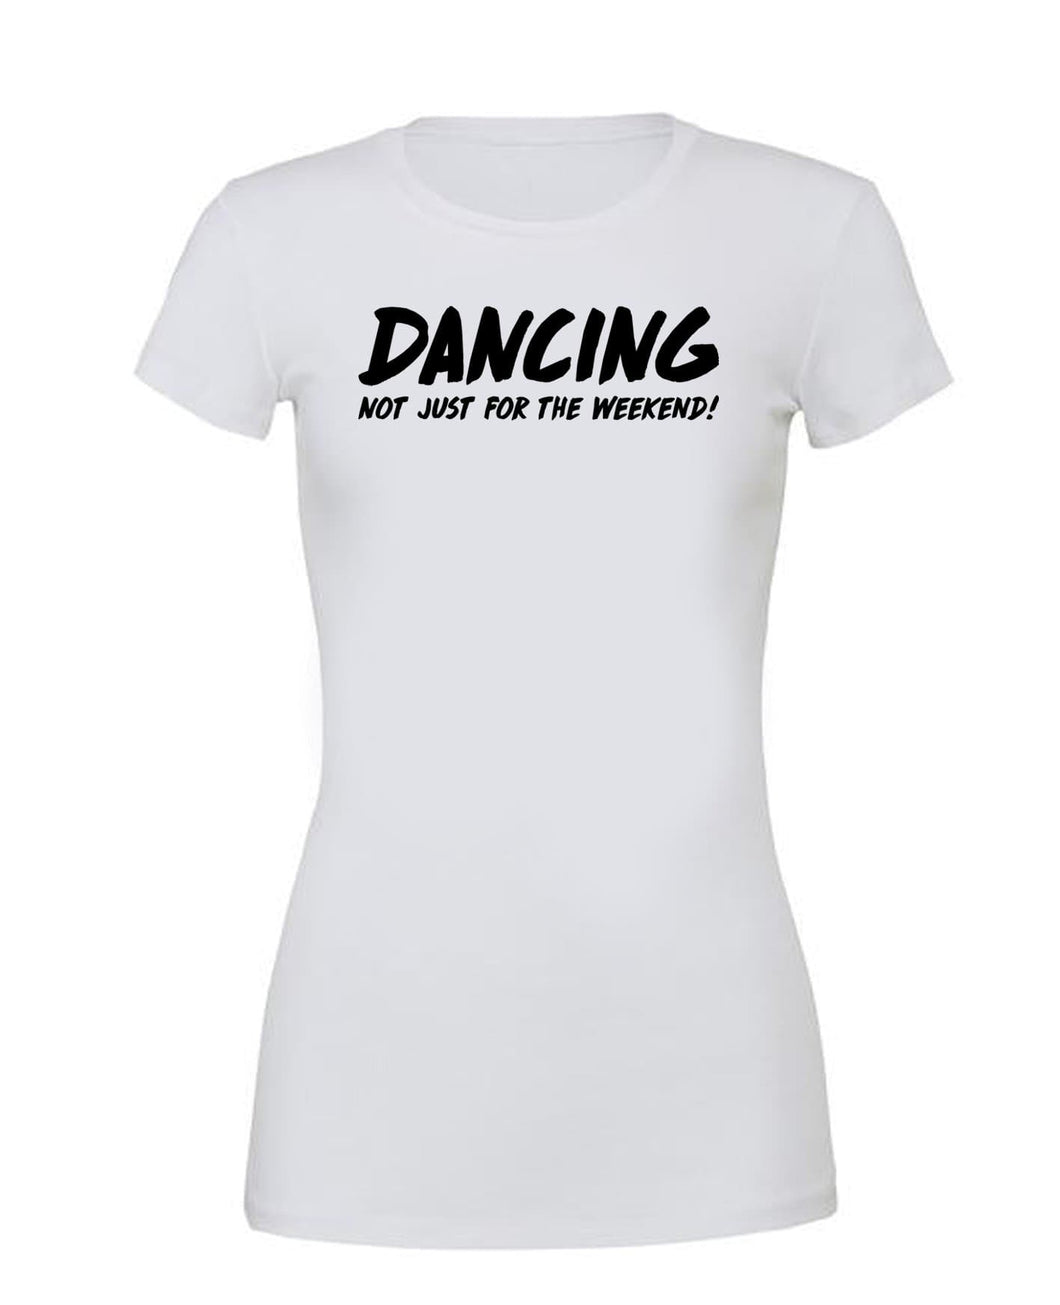 DANCING Not just for the weekend! - T Shirt White - SoreTodayStrongTomorrow